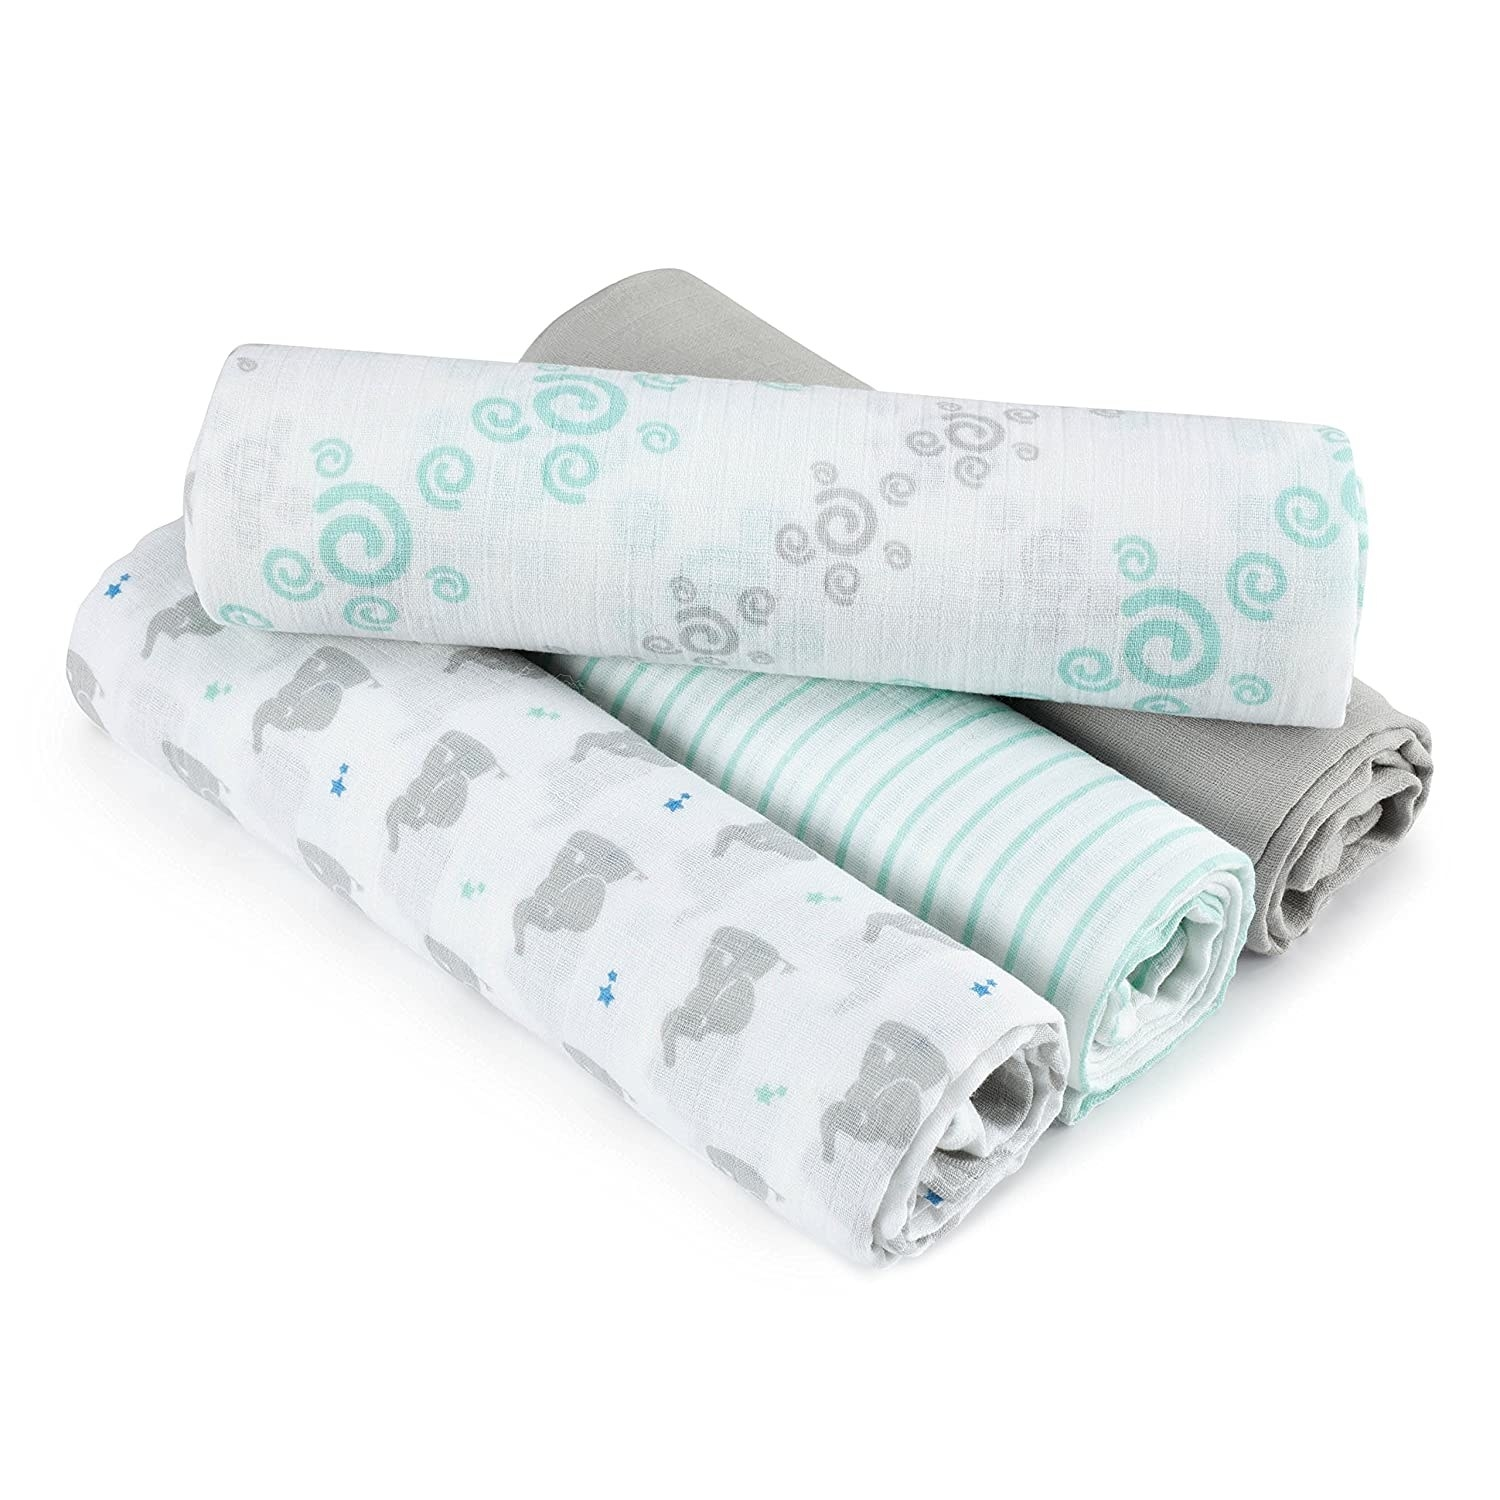 A four-pack of swaddle blankets.